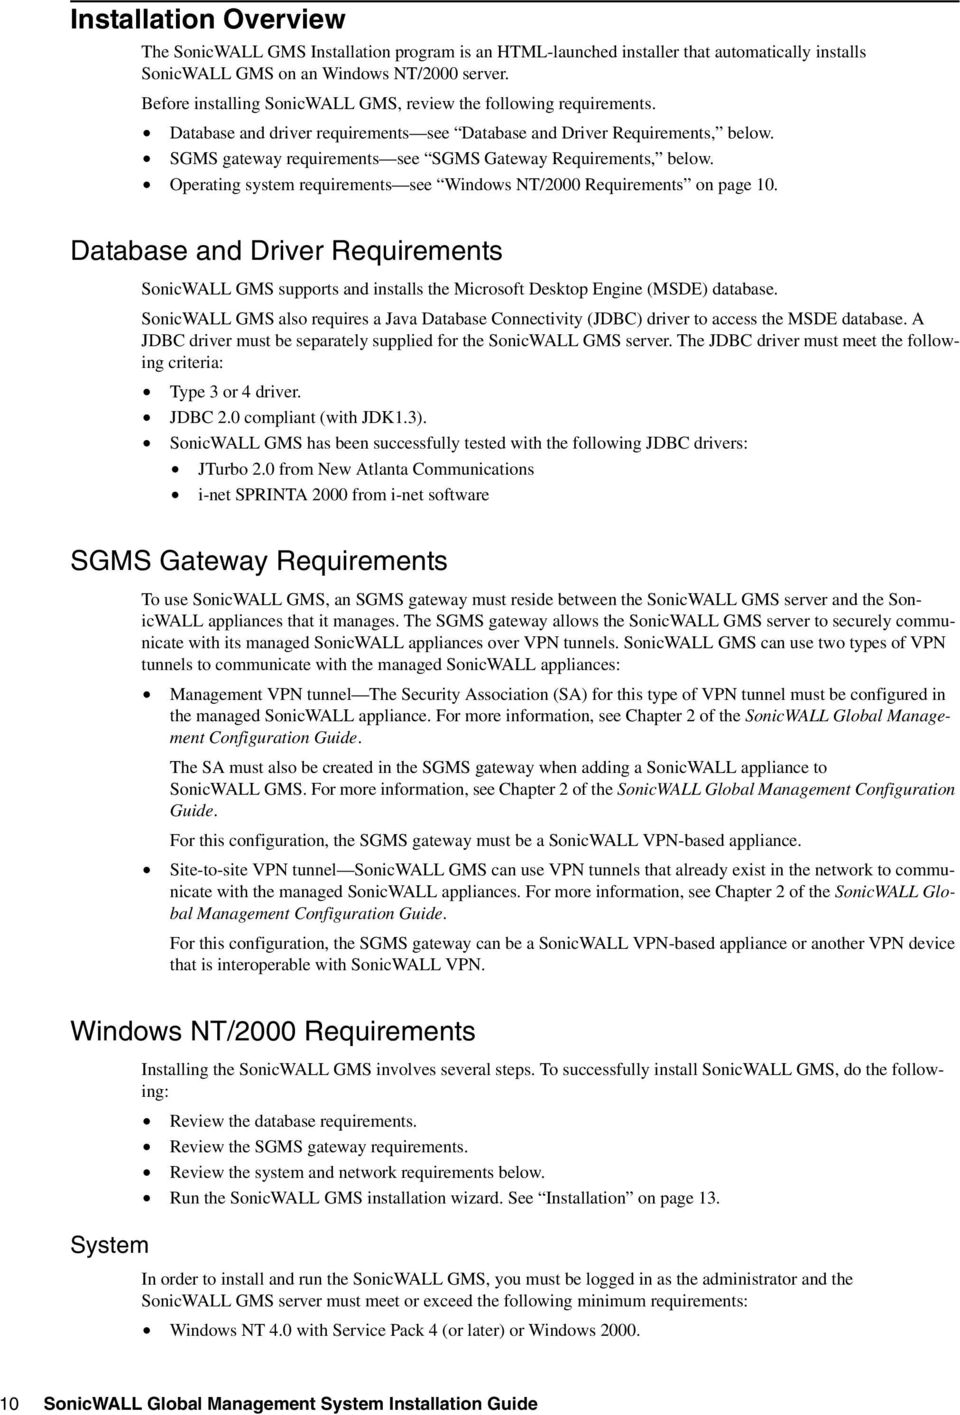 SGMS gateway requirements see SGMS Gateway Requirements, below. Operating system requirements see Windows NT/2000 Requirements on page 10.